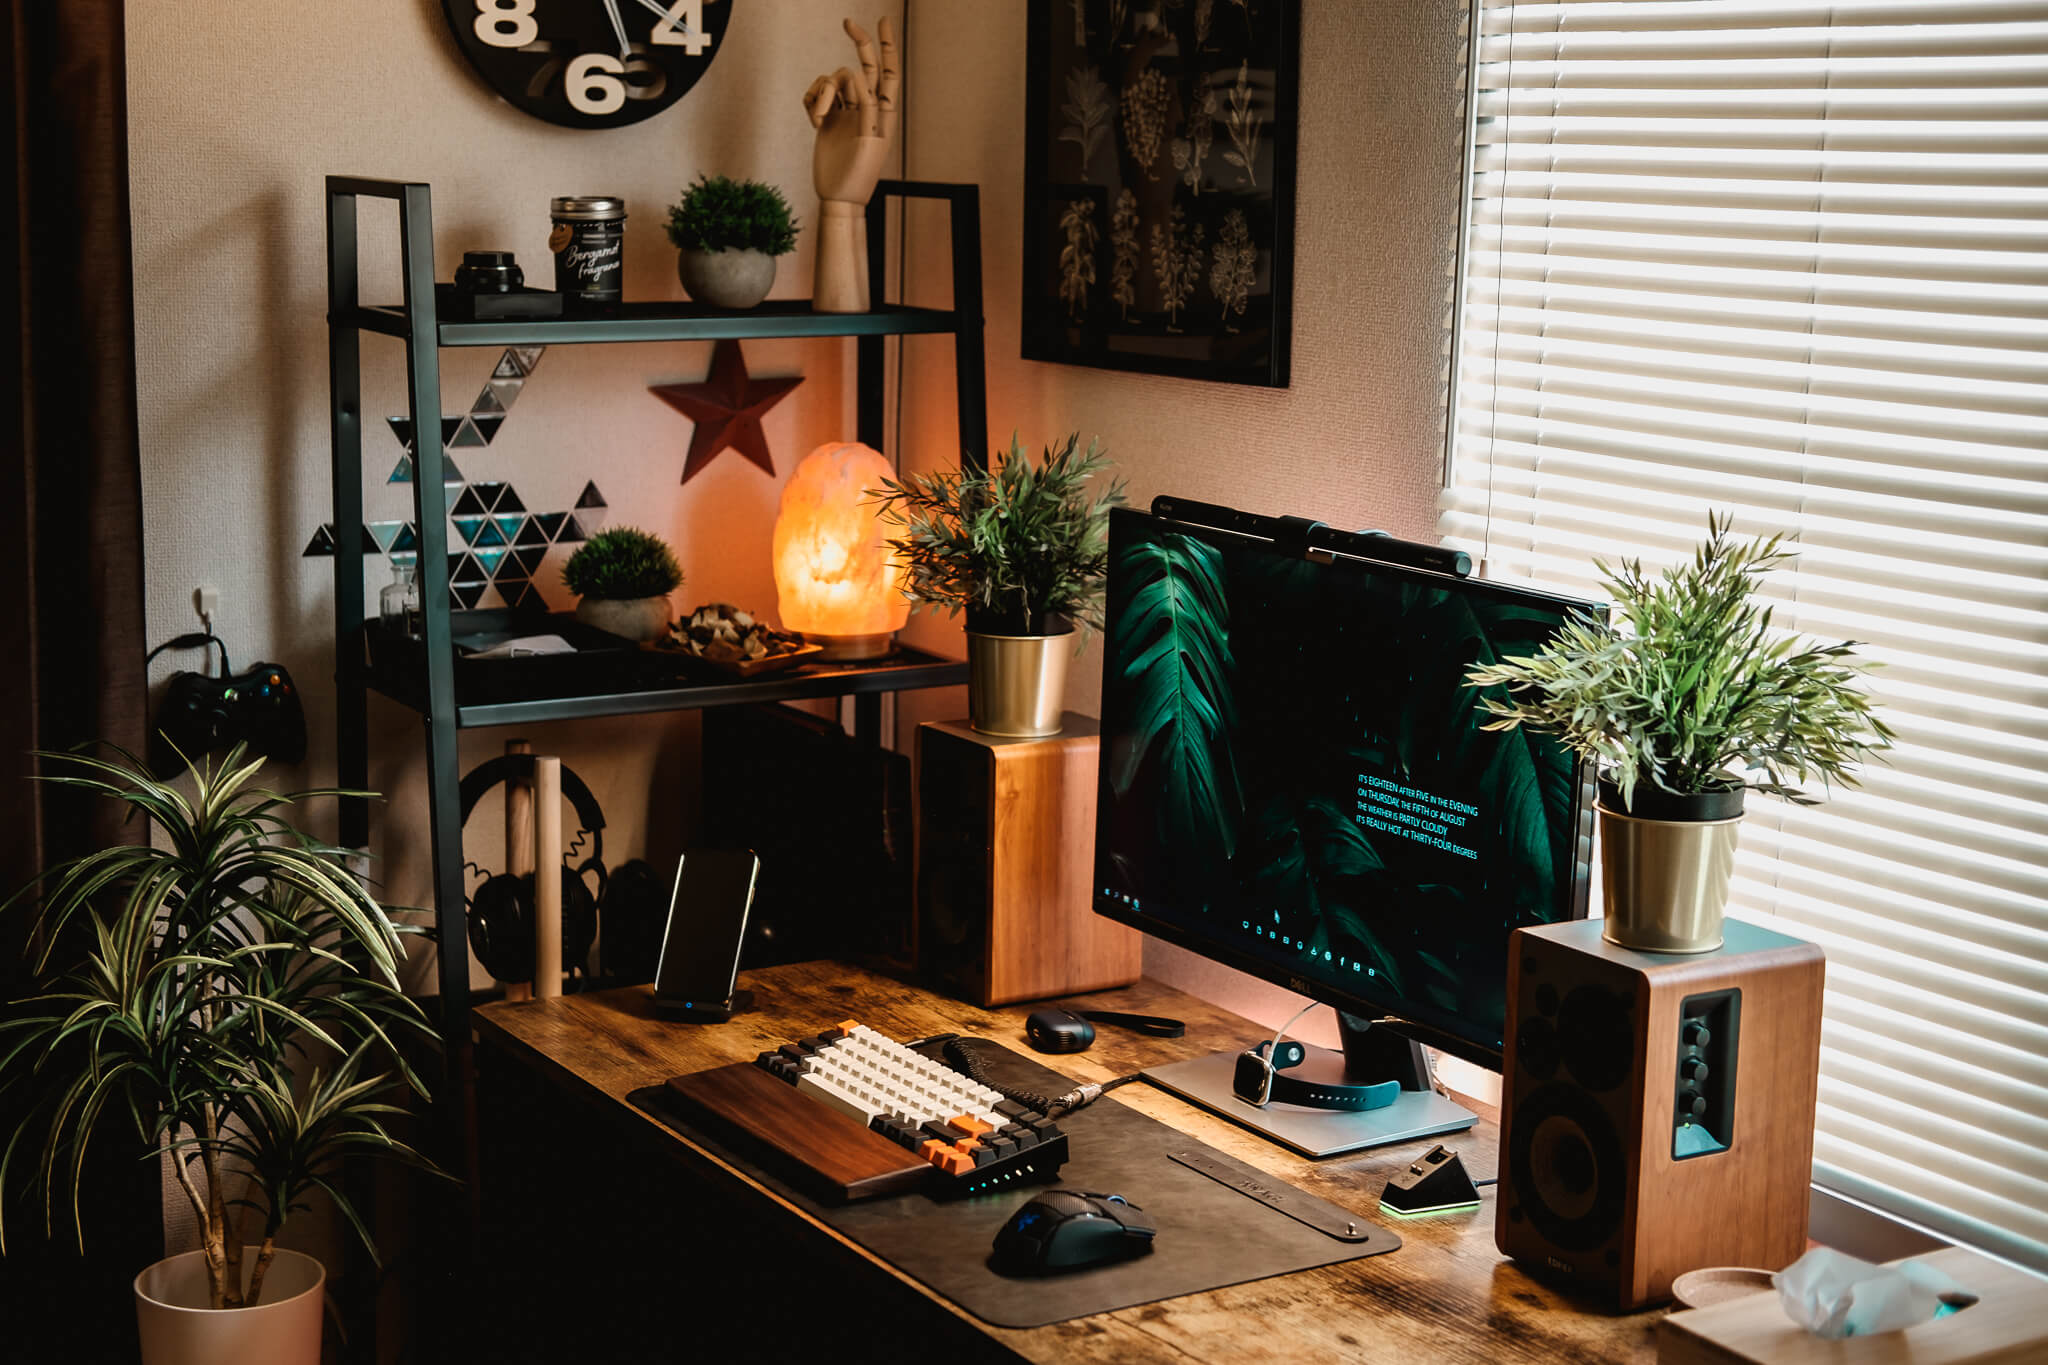 Home office with plants and Himalayan salt lamp in Japan